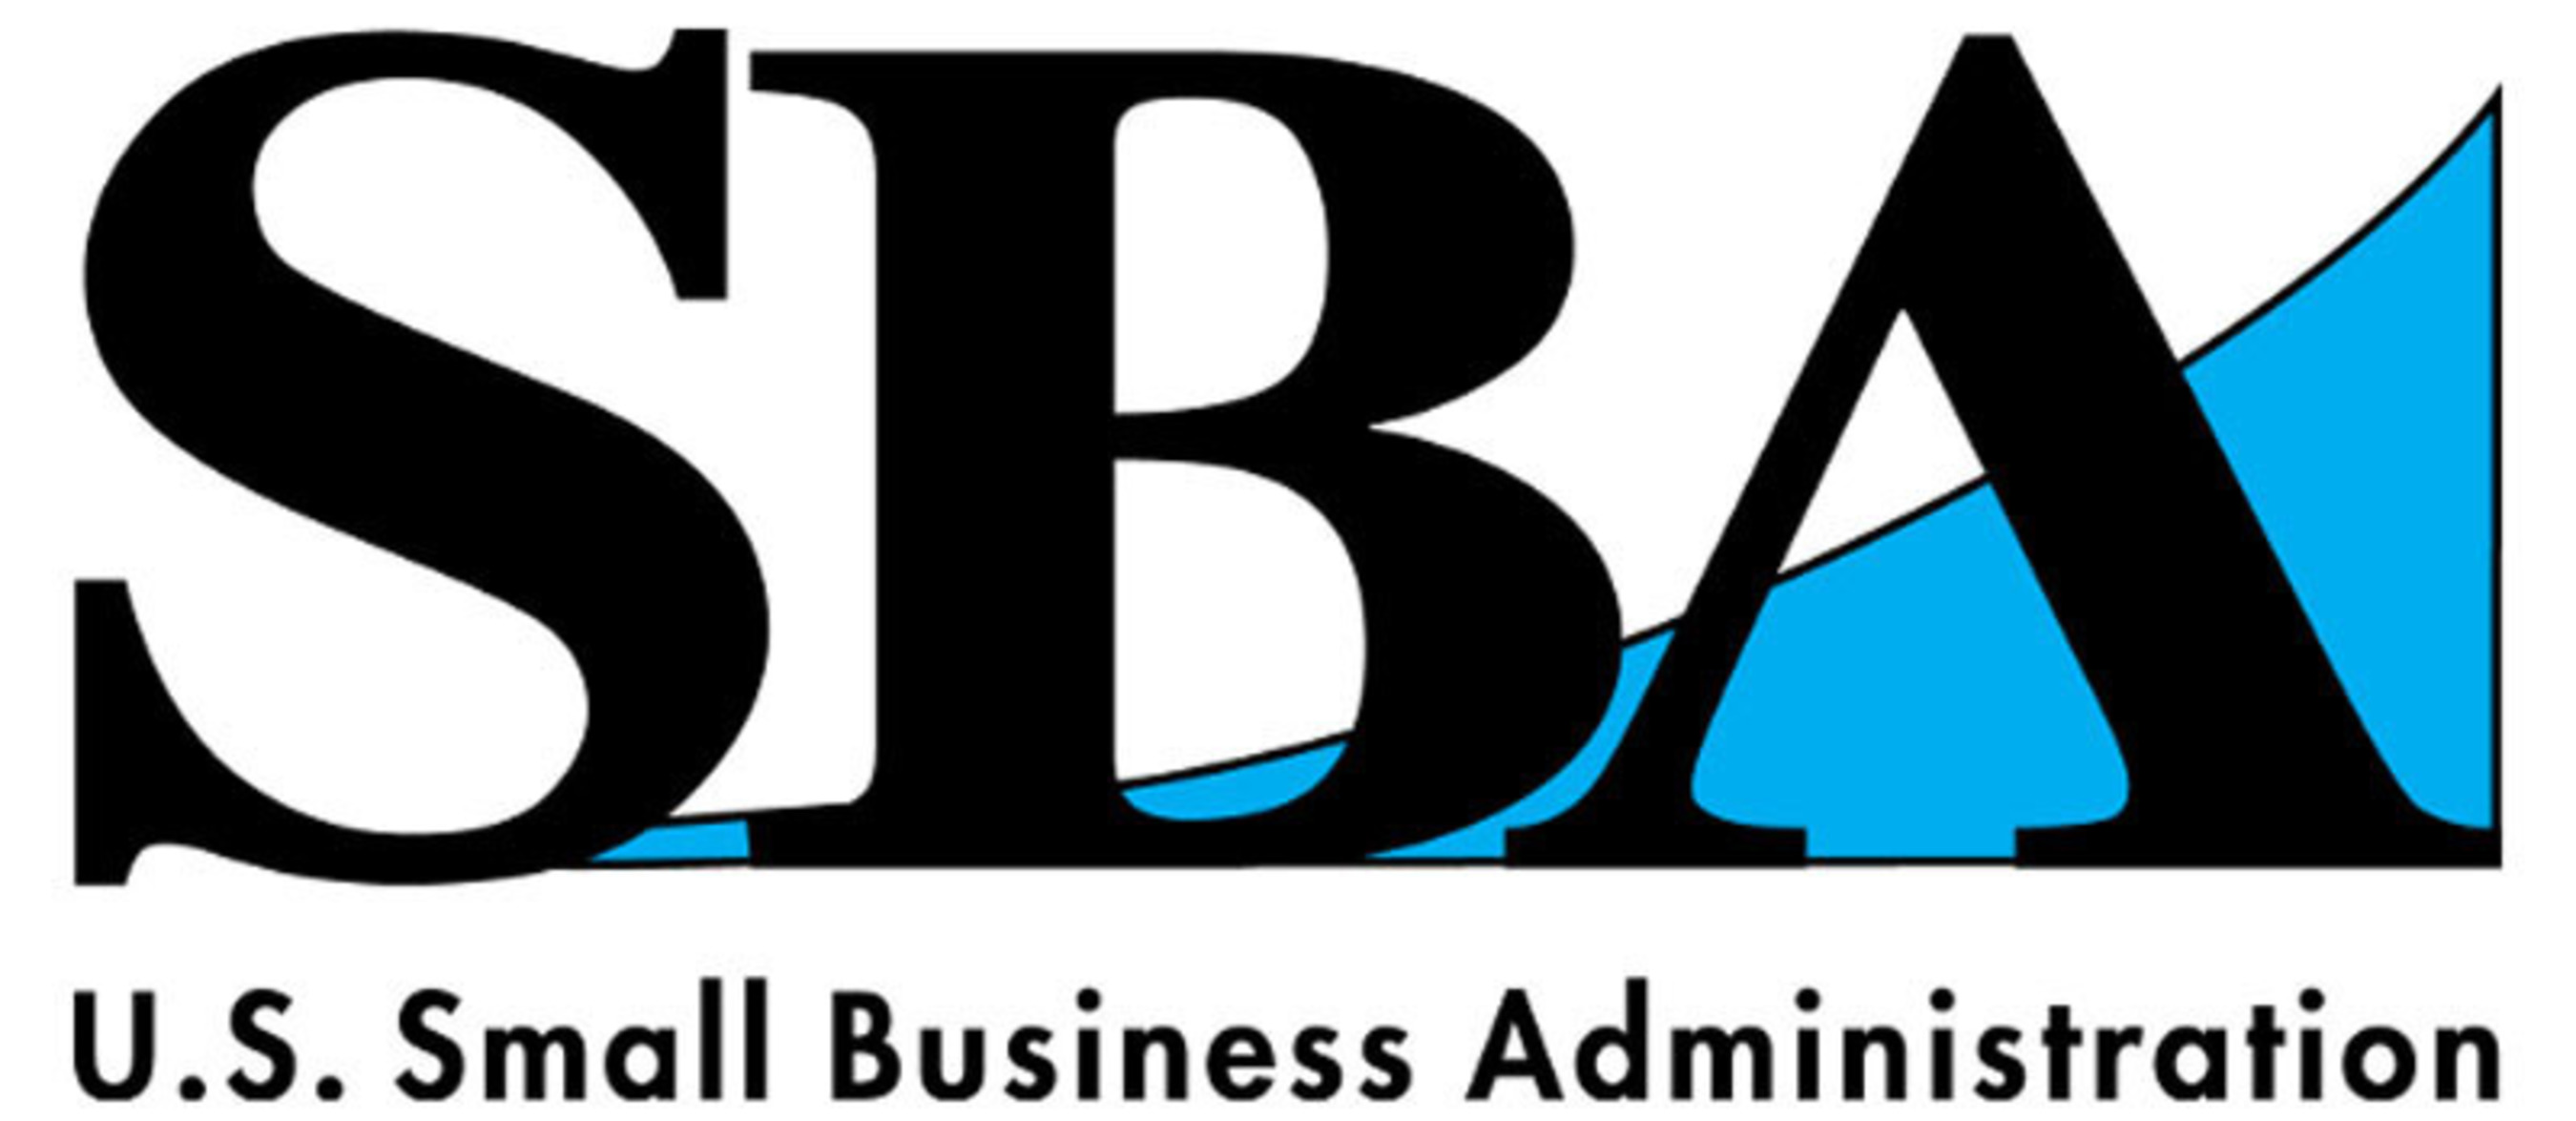 SBA Administrator Announces Major Expansion to LINC